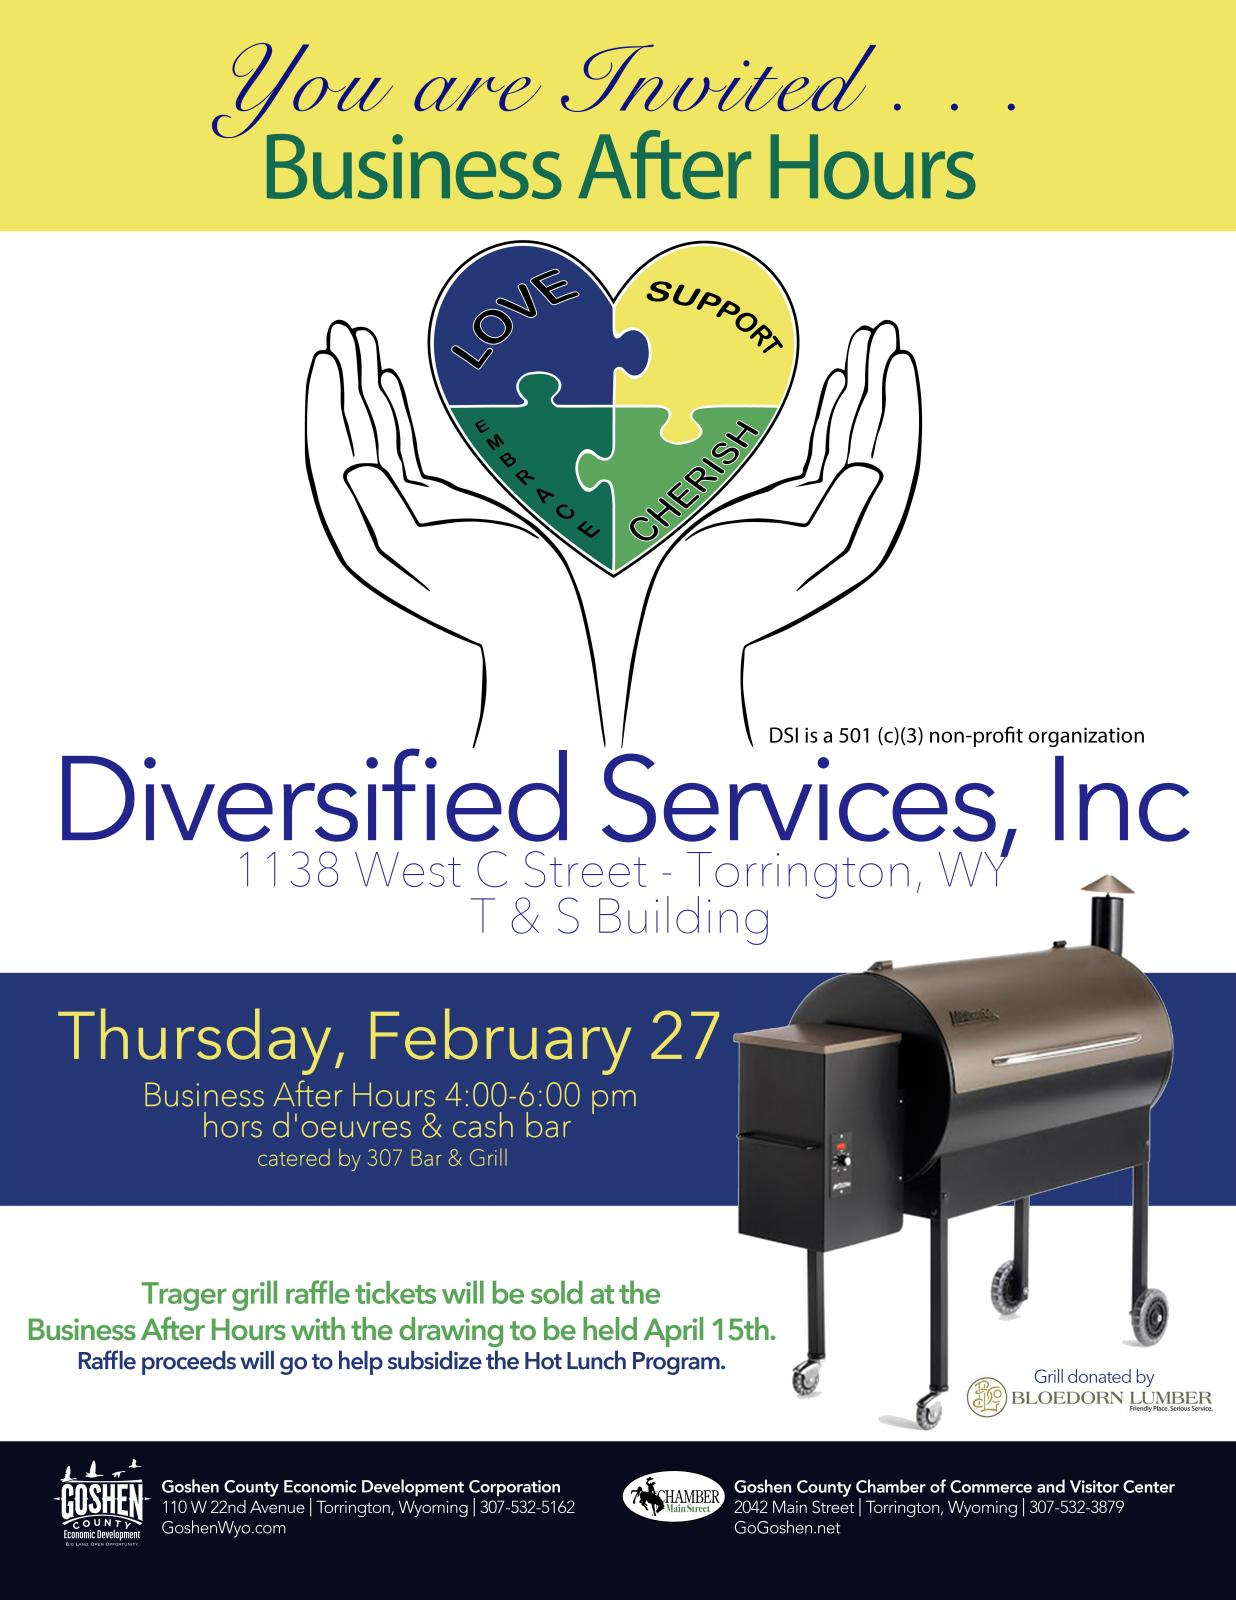 Diversified Services, Inc Business After Hours Photo